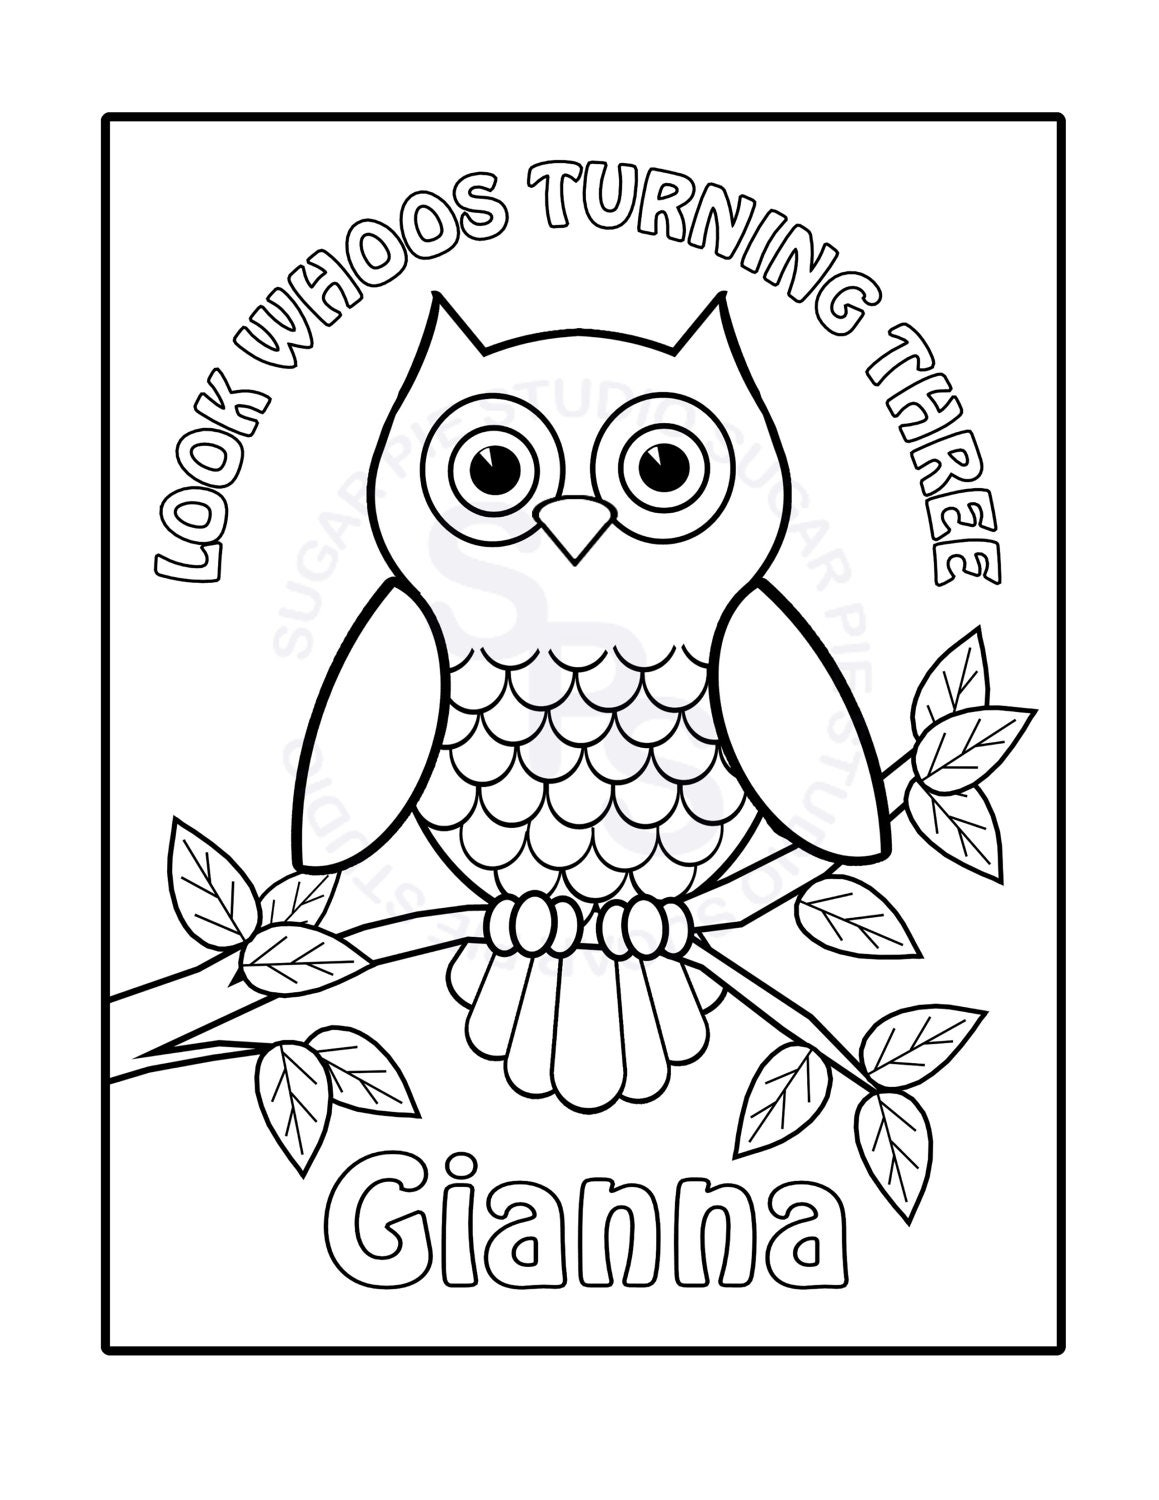 cute owl coloring pages bratz coloring pages barn owl colouring - Cute Owl Coloring Pages Girls